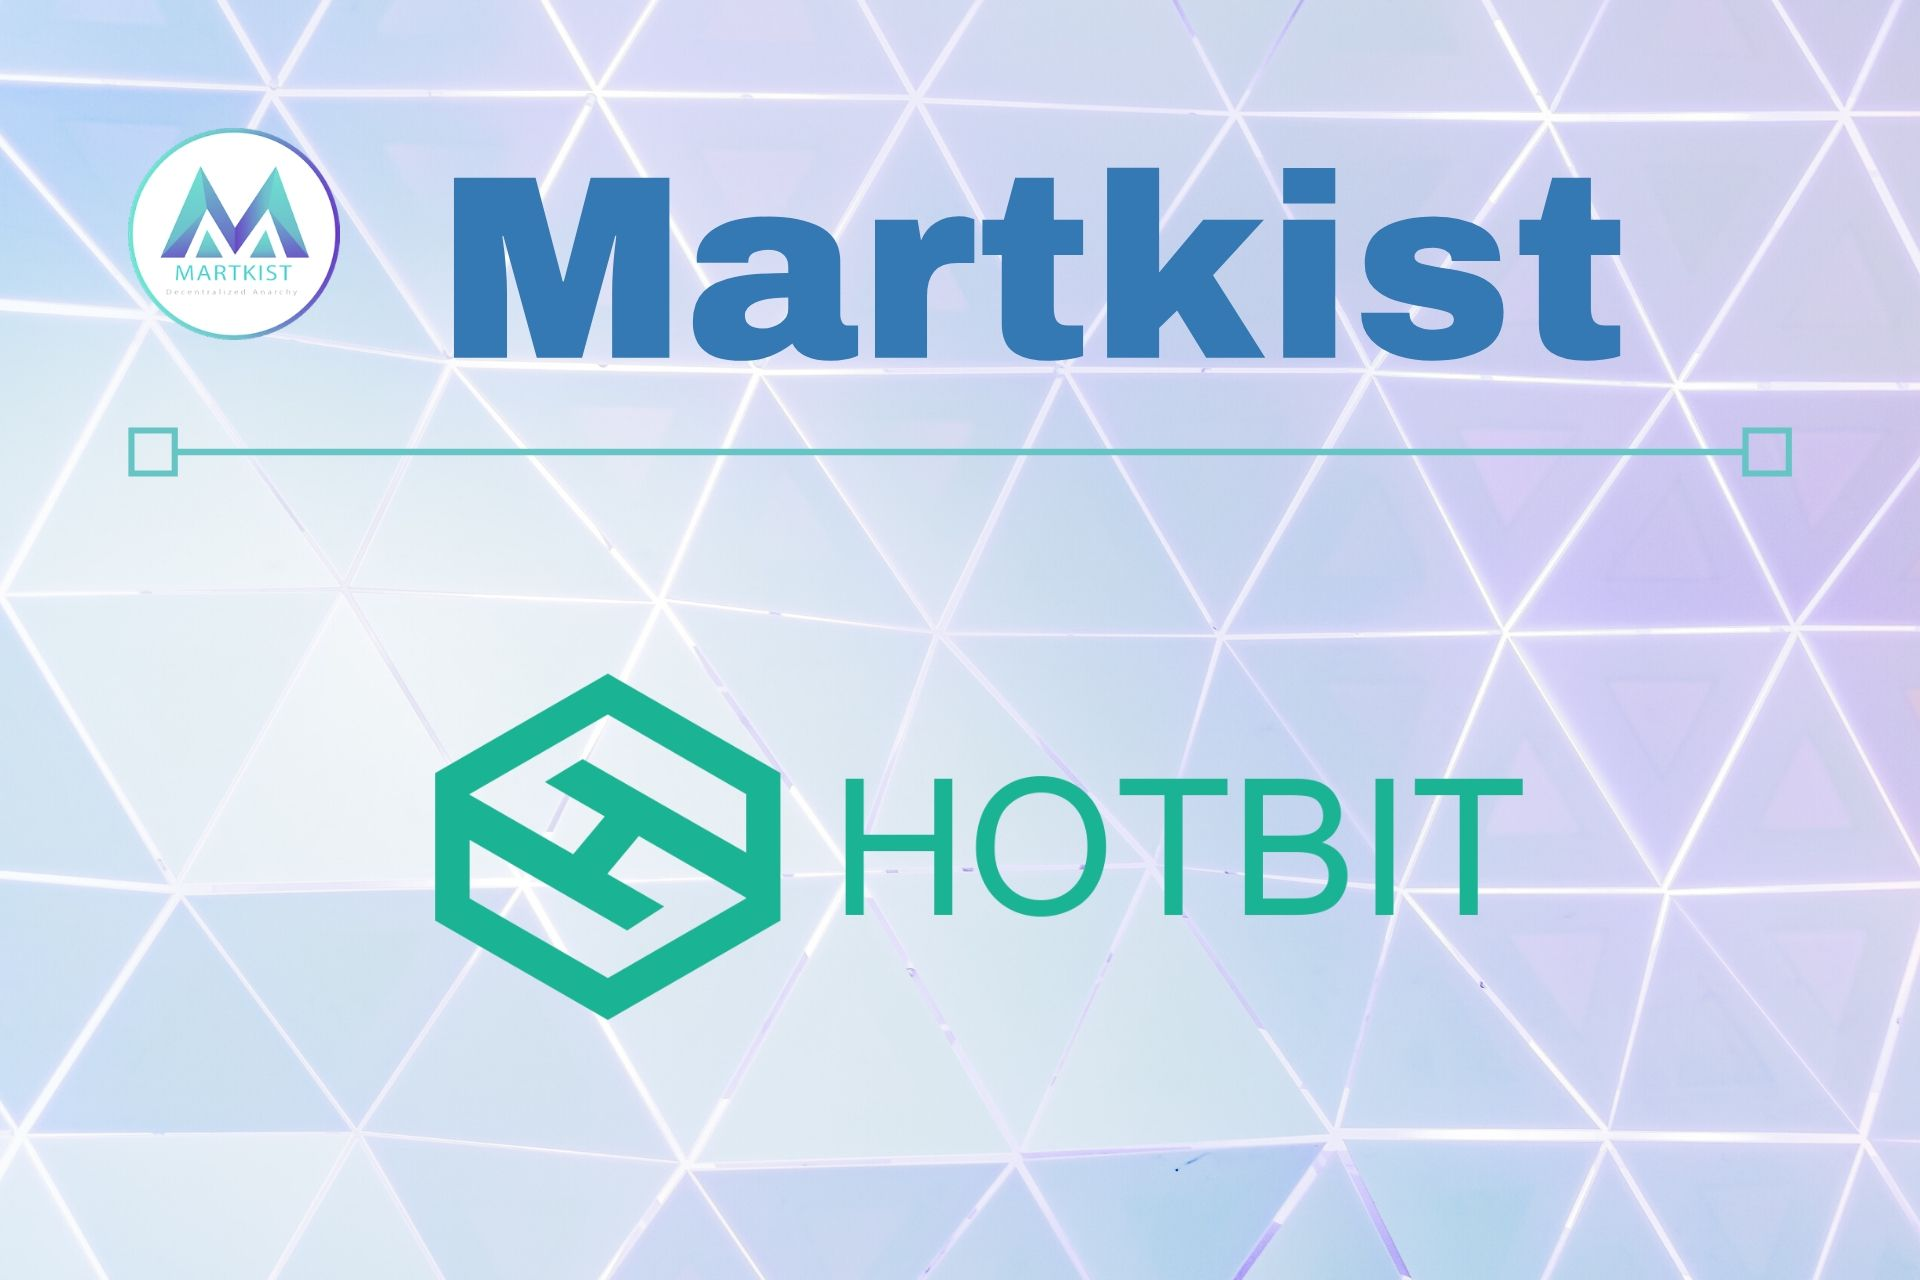 Marktist Has a New Proposal Up for a Vote – Enlisting on the HotBit Exchange